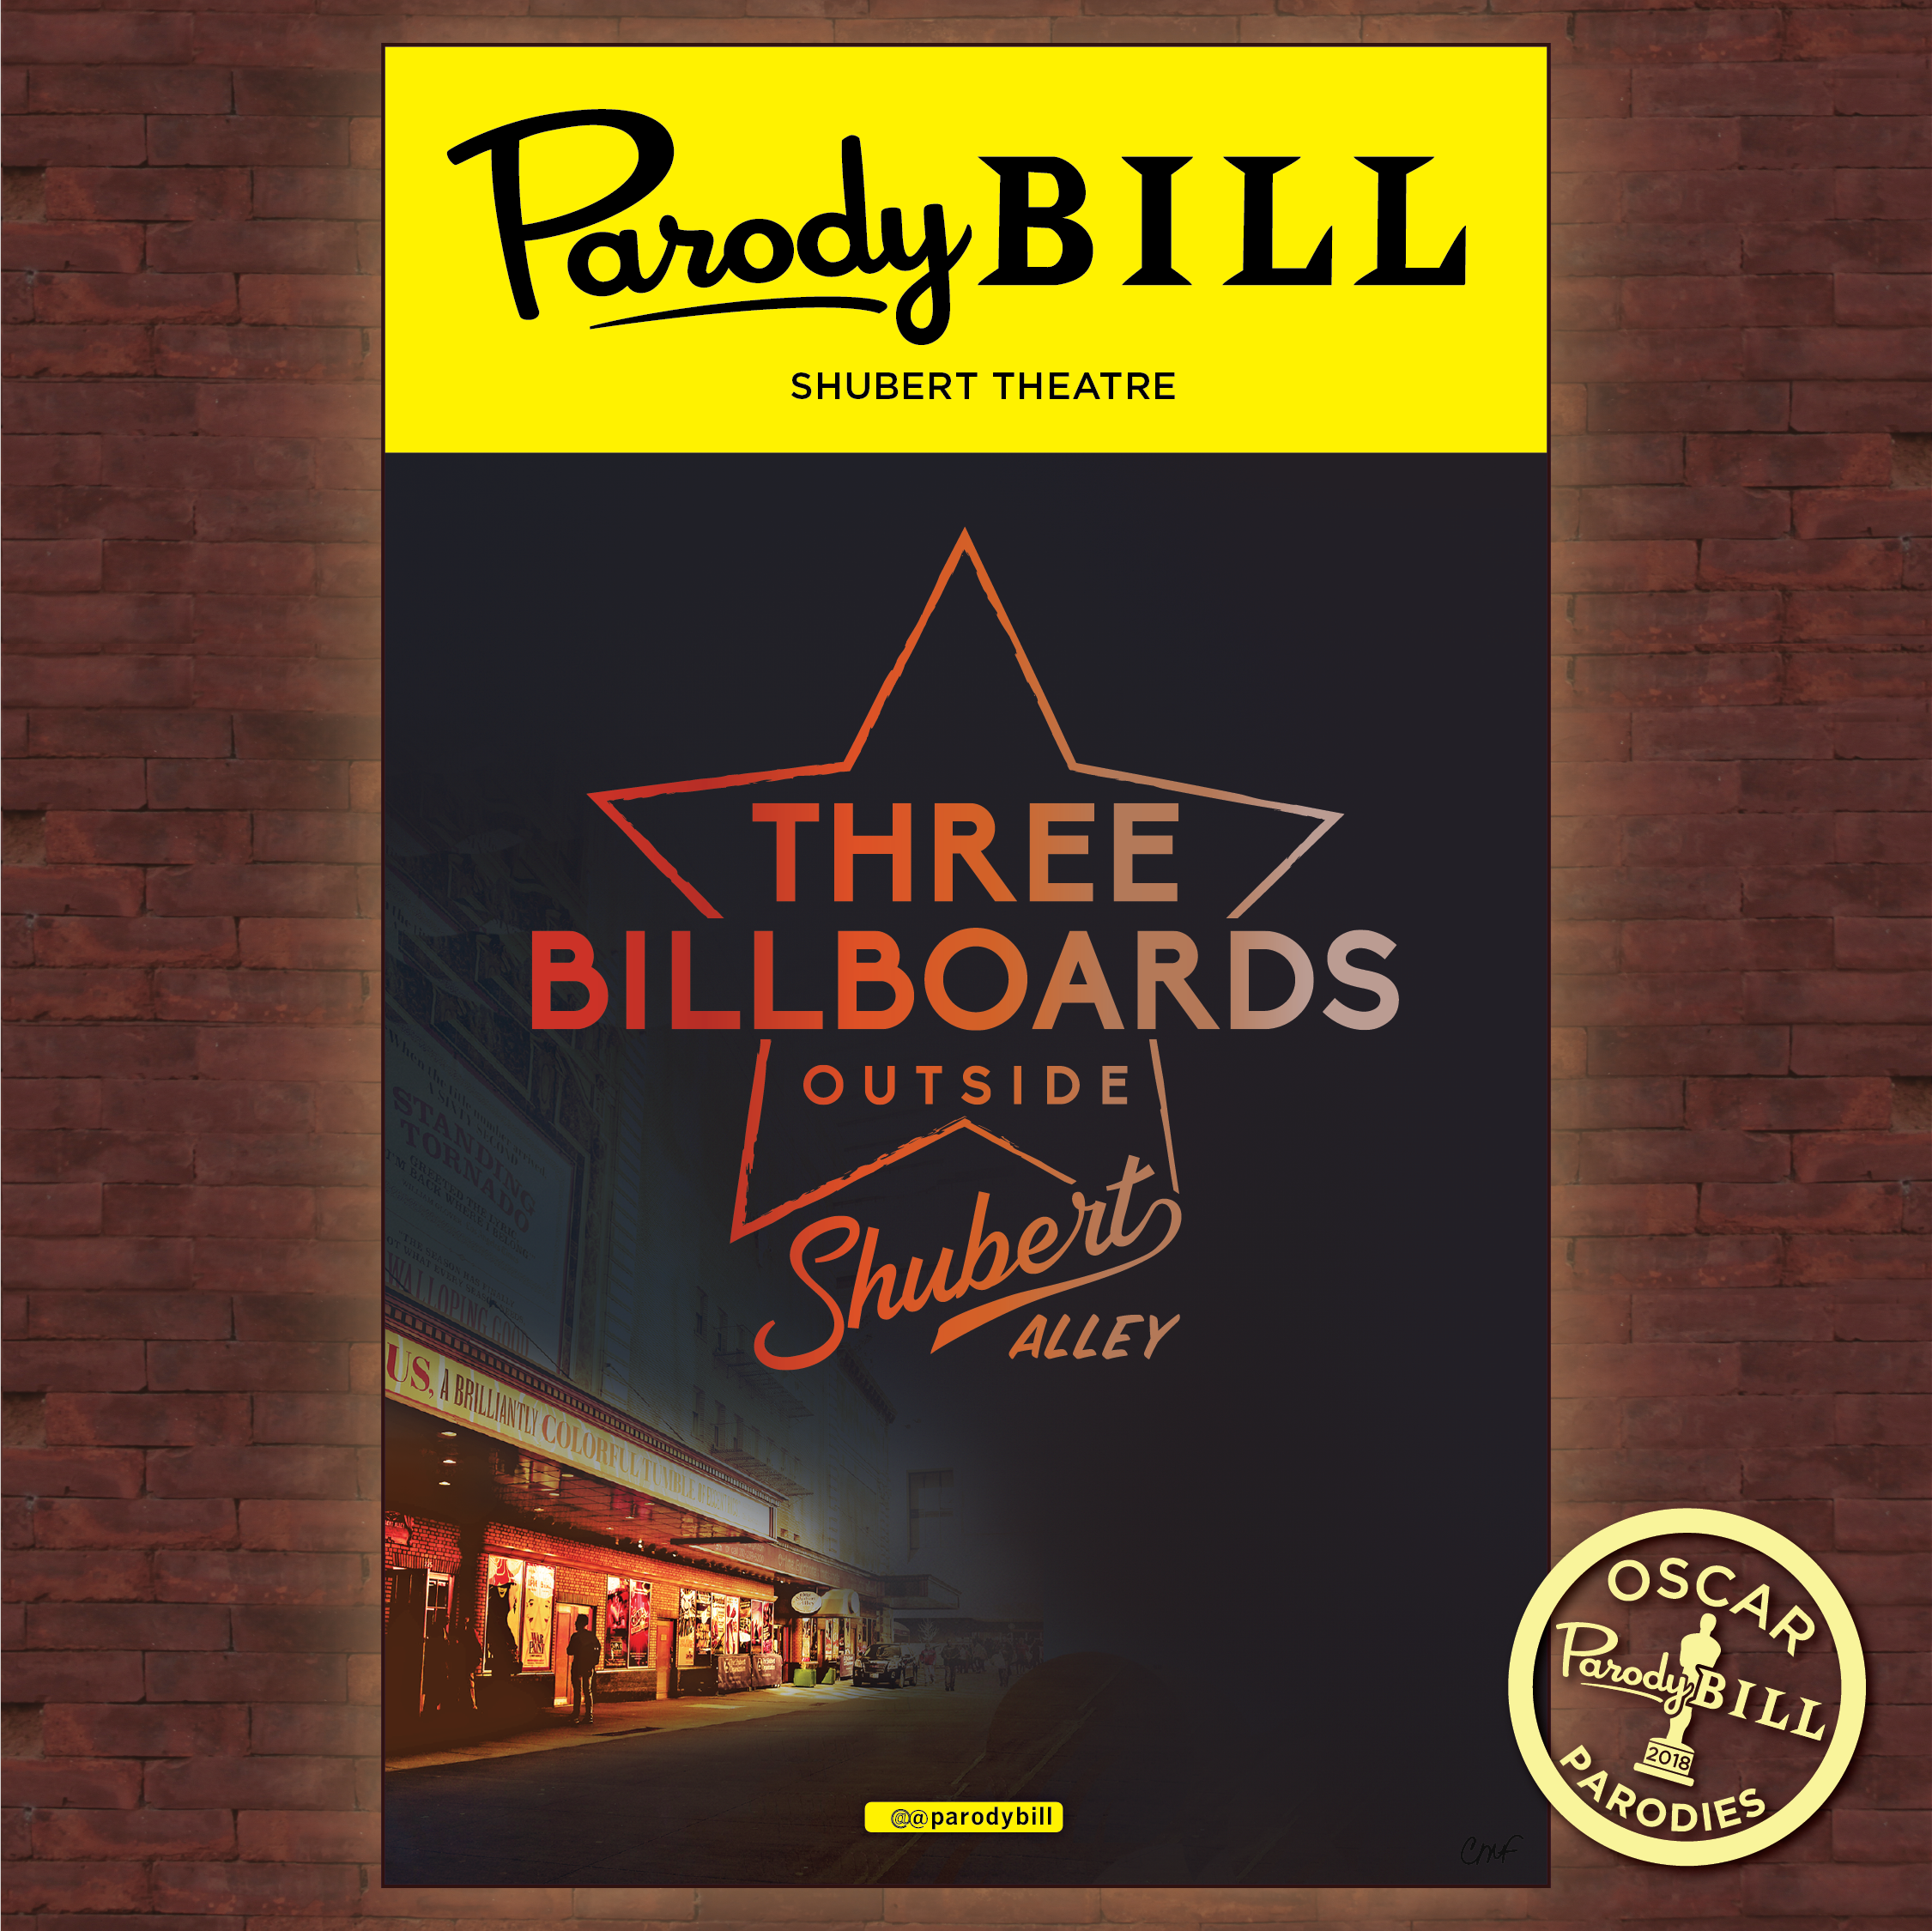 THREE BILLBOARDS OUTSIDE SHUBERT ALLEY